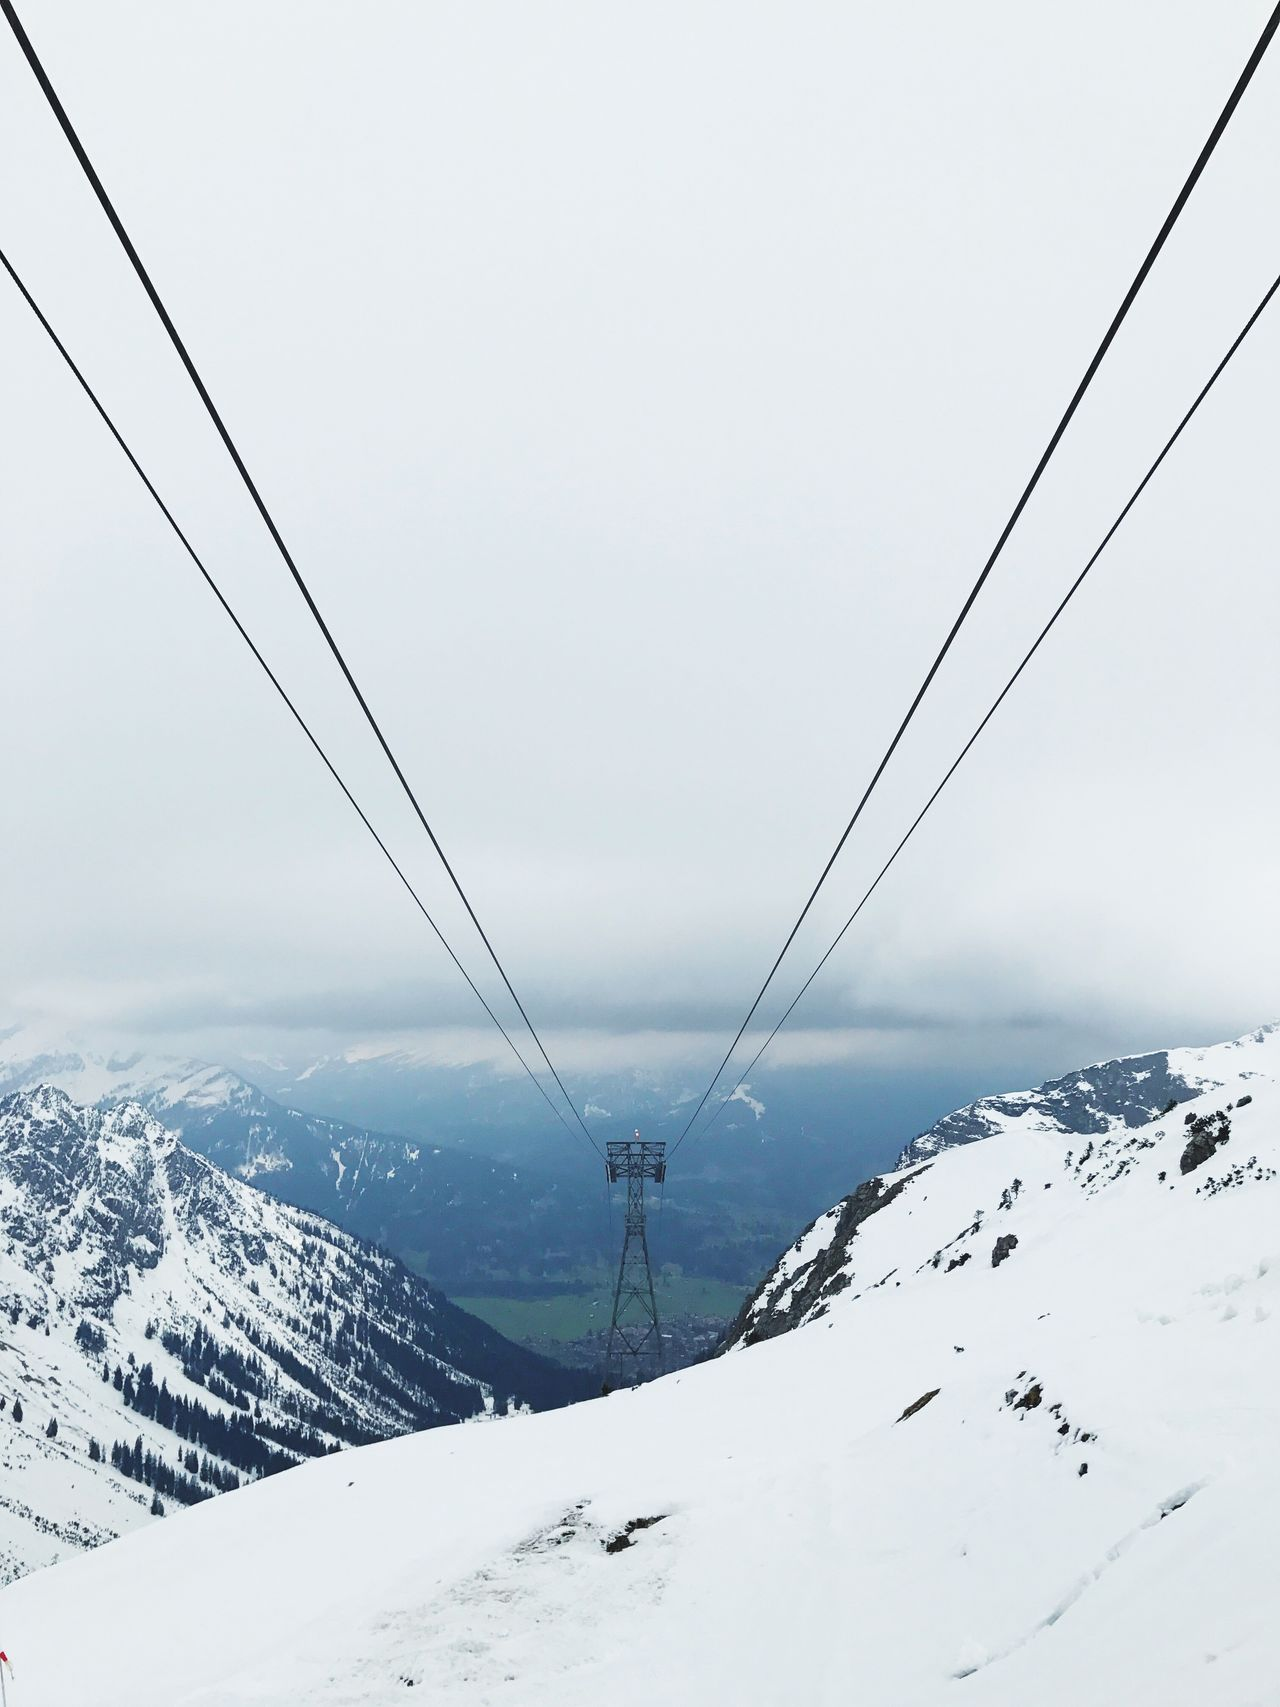 Snow Winter Cold Temperature Cable Weather Connection Mountain Nature Overhead Cable Car No People Outdoors Ski Lift Snowcapped Mountain Scenics Beauty In Nature Day Sky Landscape Clear Sky Nebelhorn The Great Outdoors - 2017 EyeEm Awards